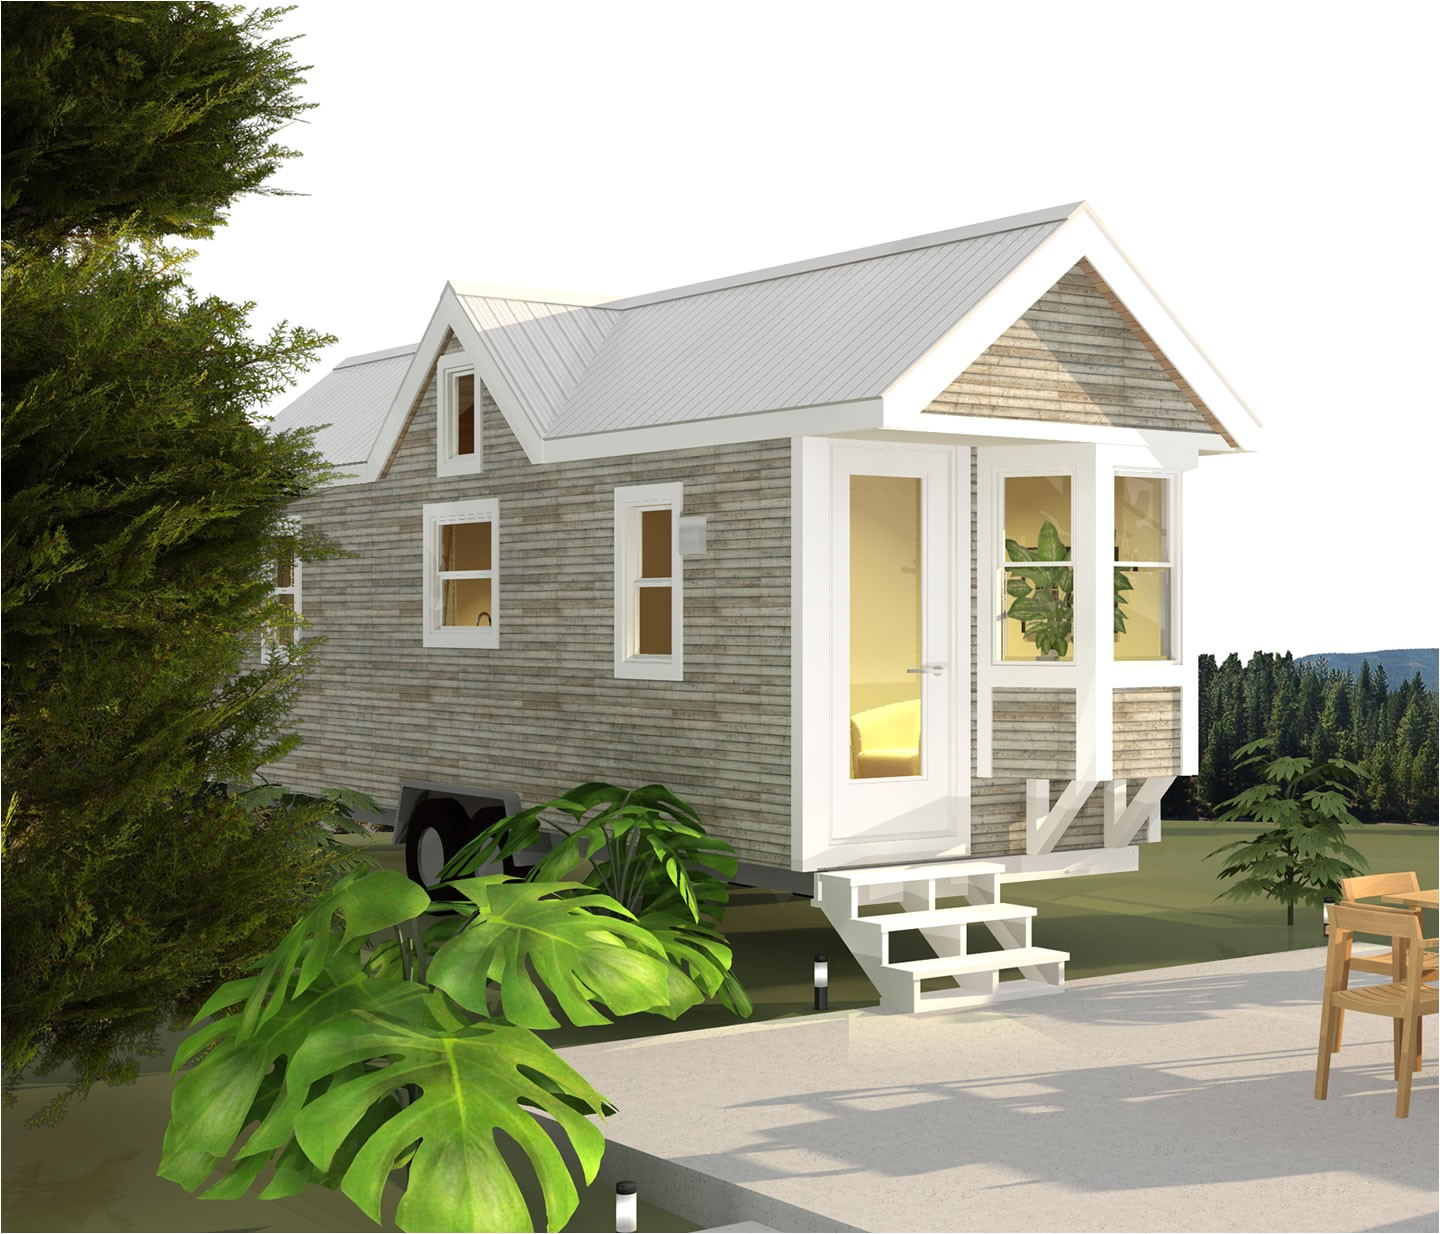 the real hidden value of tiny houses